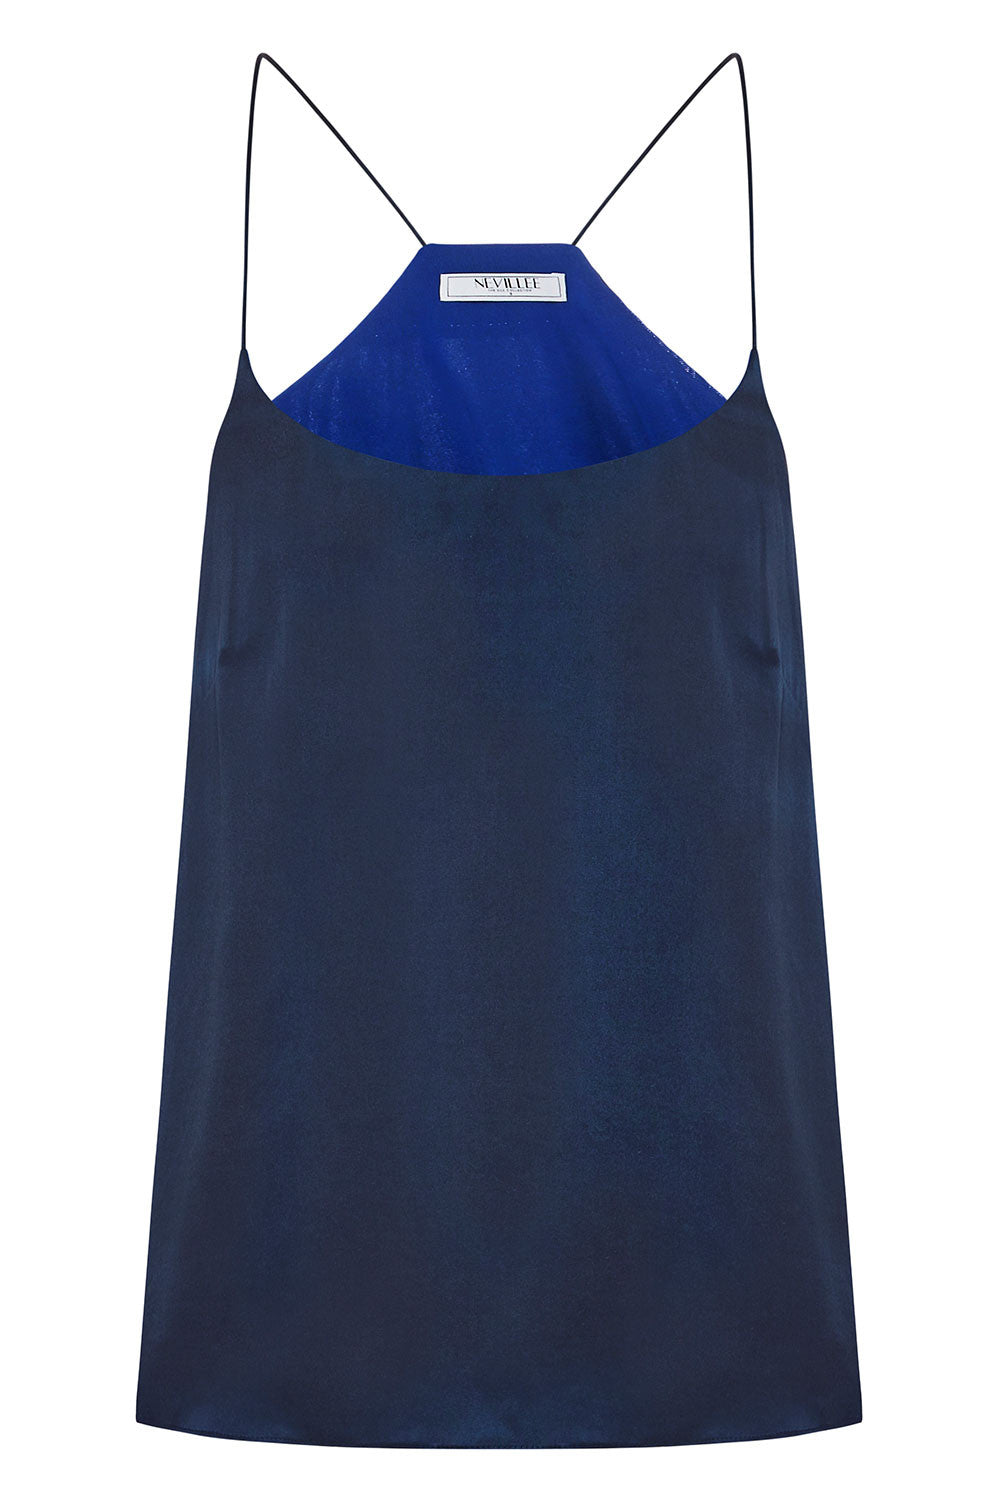 THE OFF DUTY CAMISOLE - MIDNIGHT BLUE